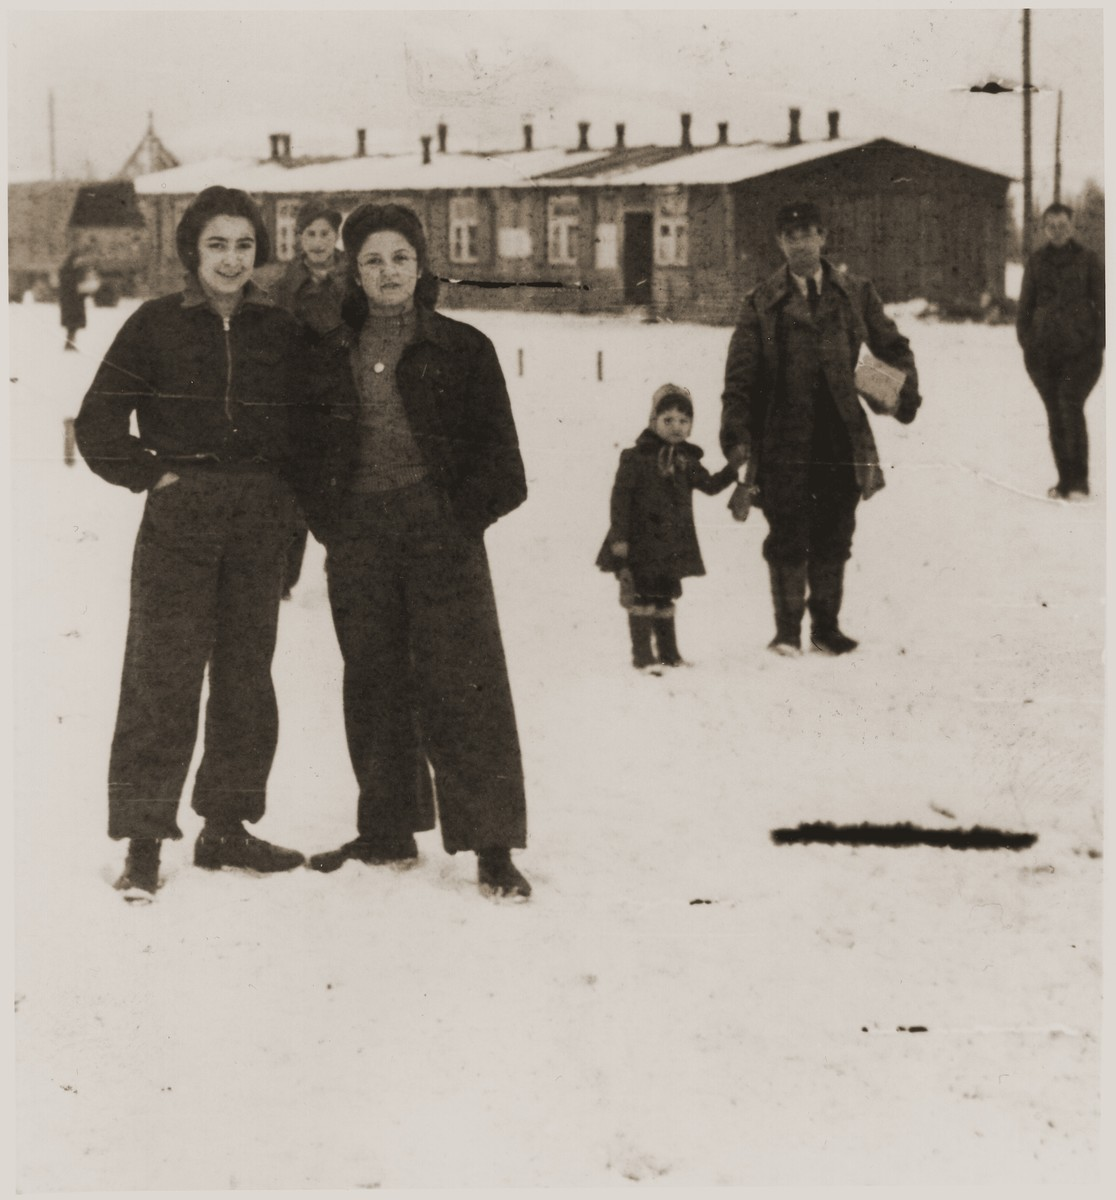 Helen Verblunsky stands with a friend in the snow outside the barracks of an unidentified DP camp in the British zone.